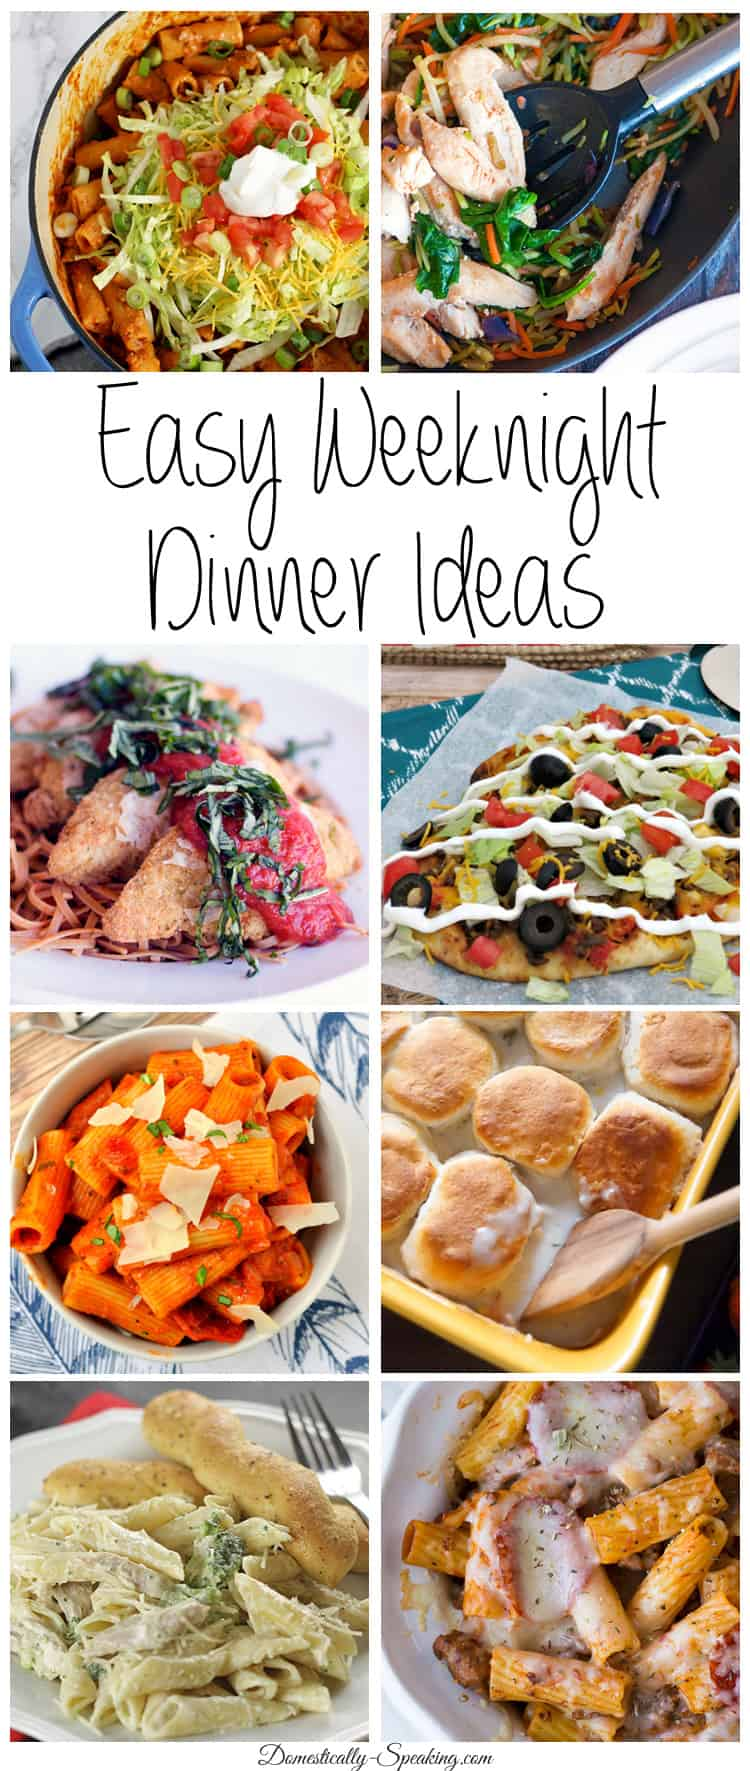 Easy Weeknight Dinner Ideas perfect for those busy nights takes less than 30 minutes